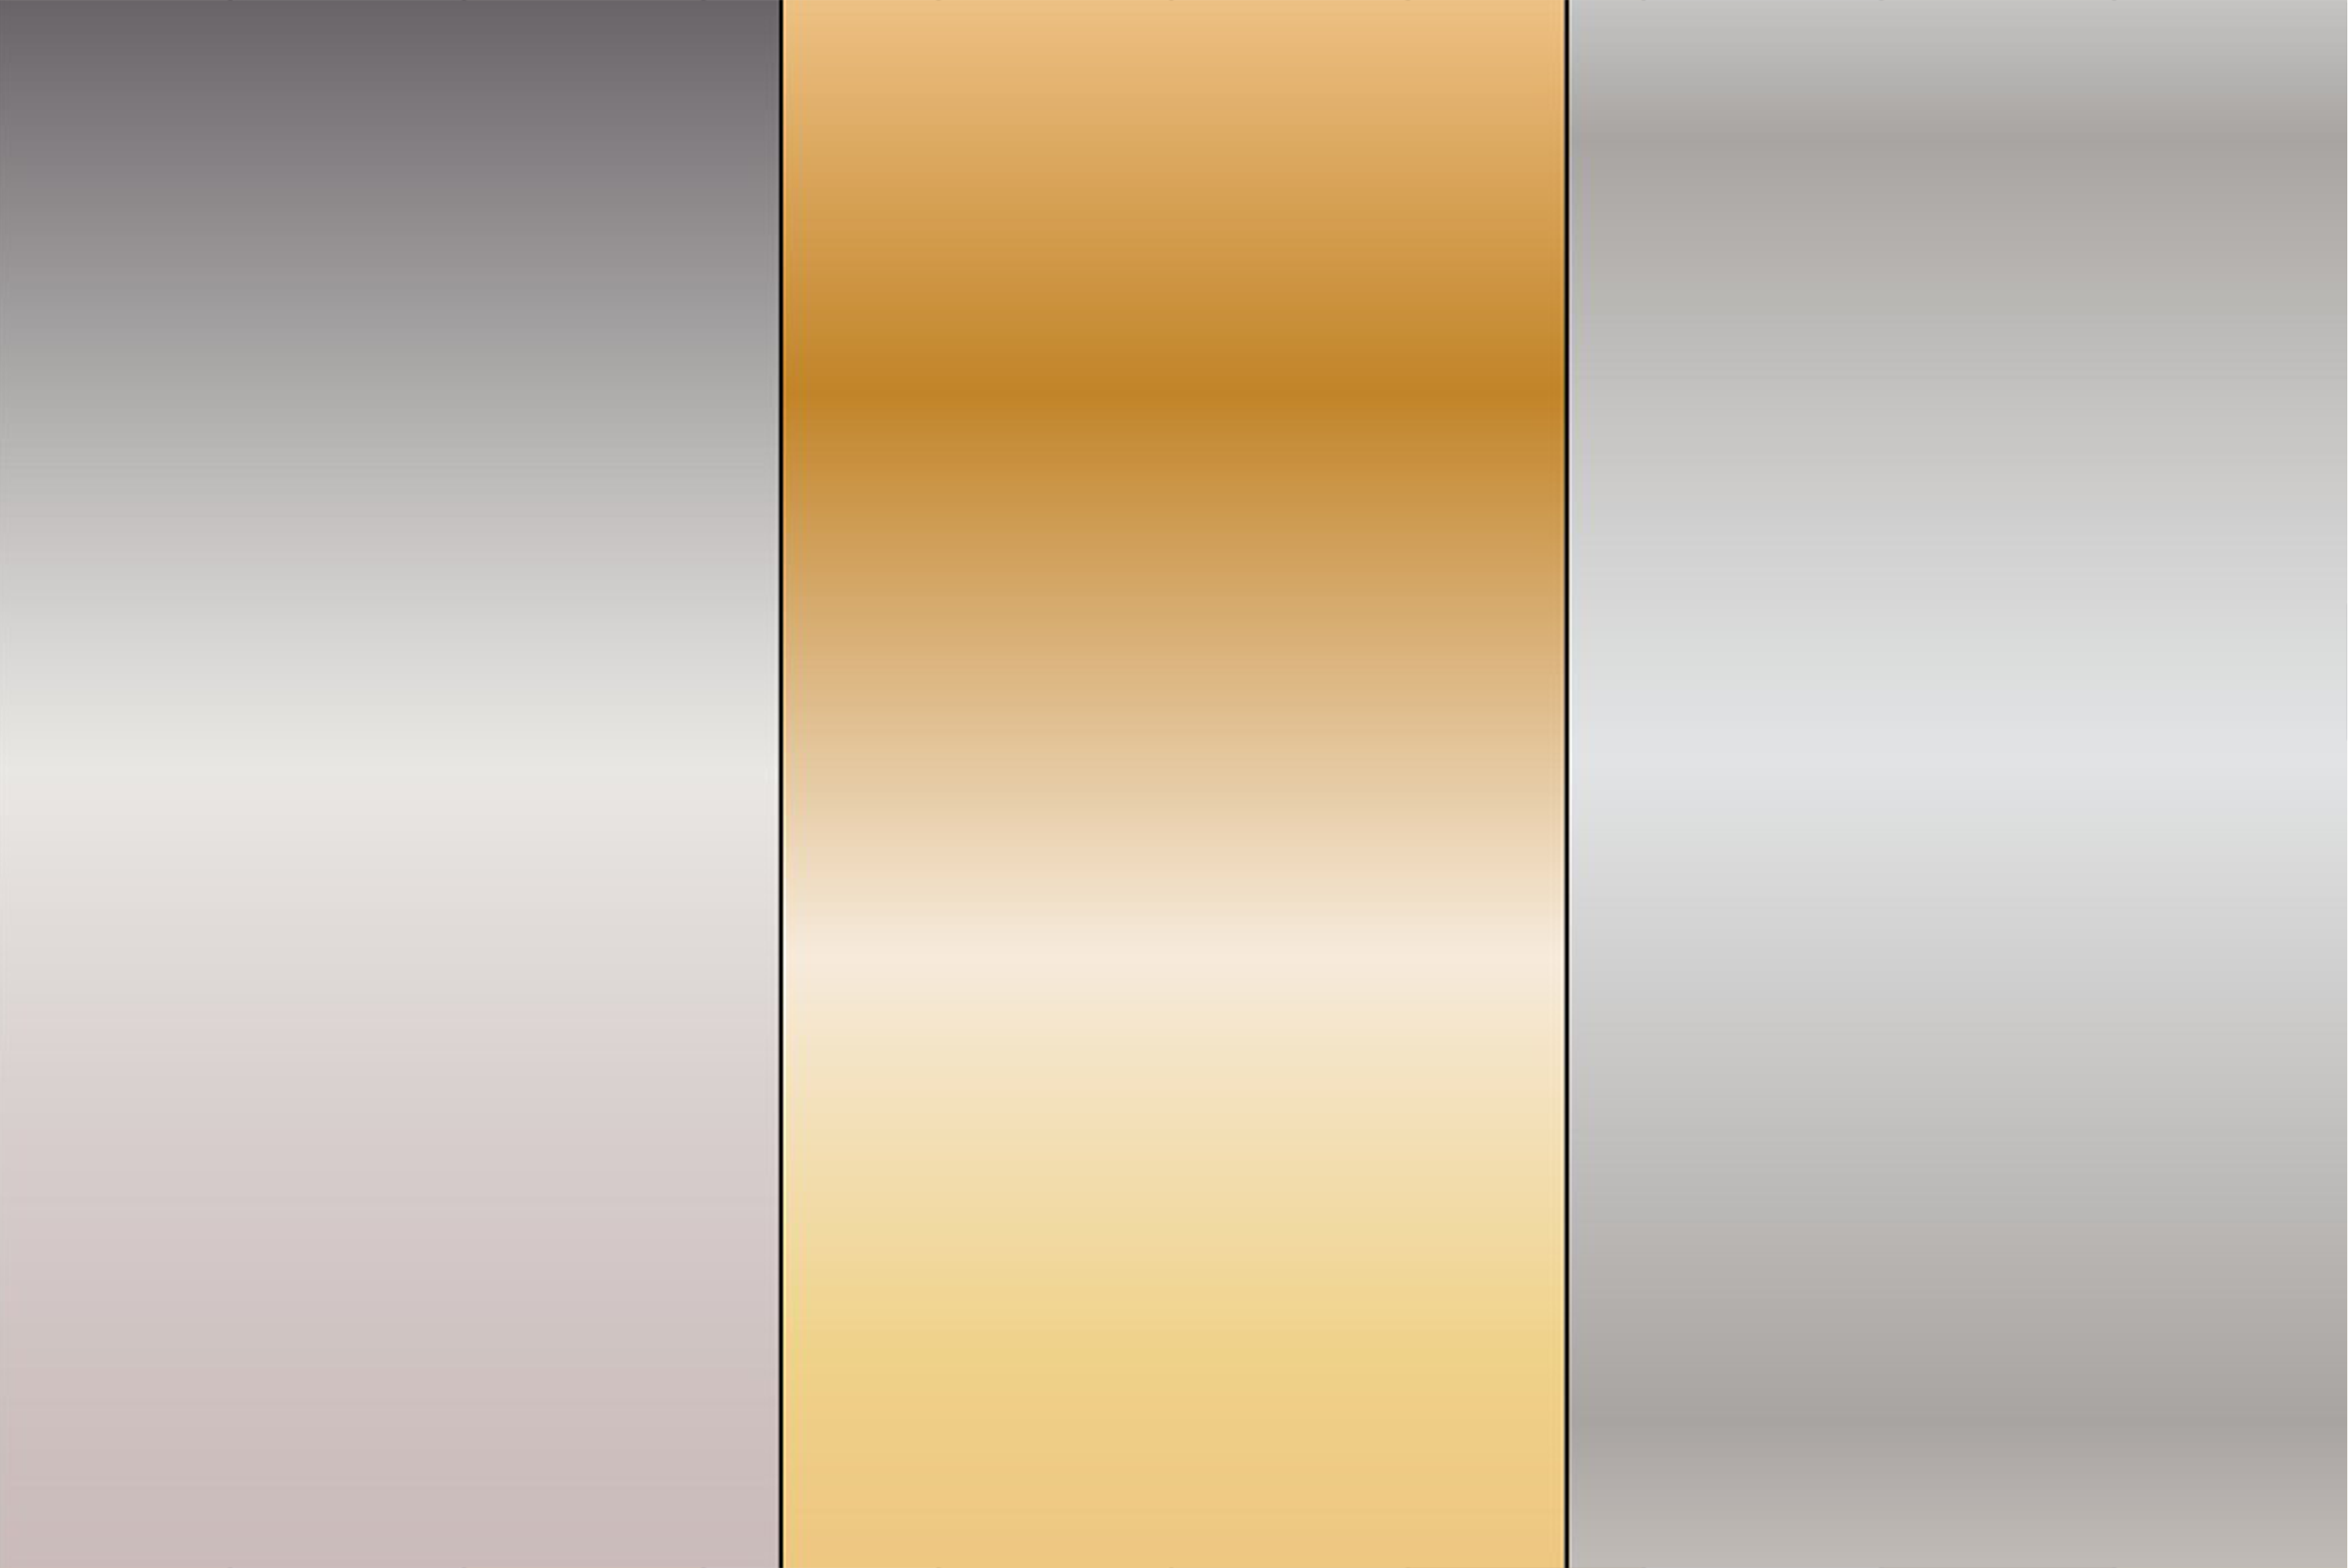 Gradient Metallic Backgrounds example image 2